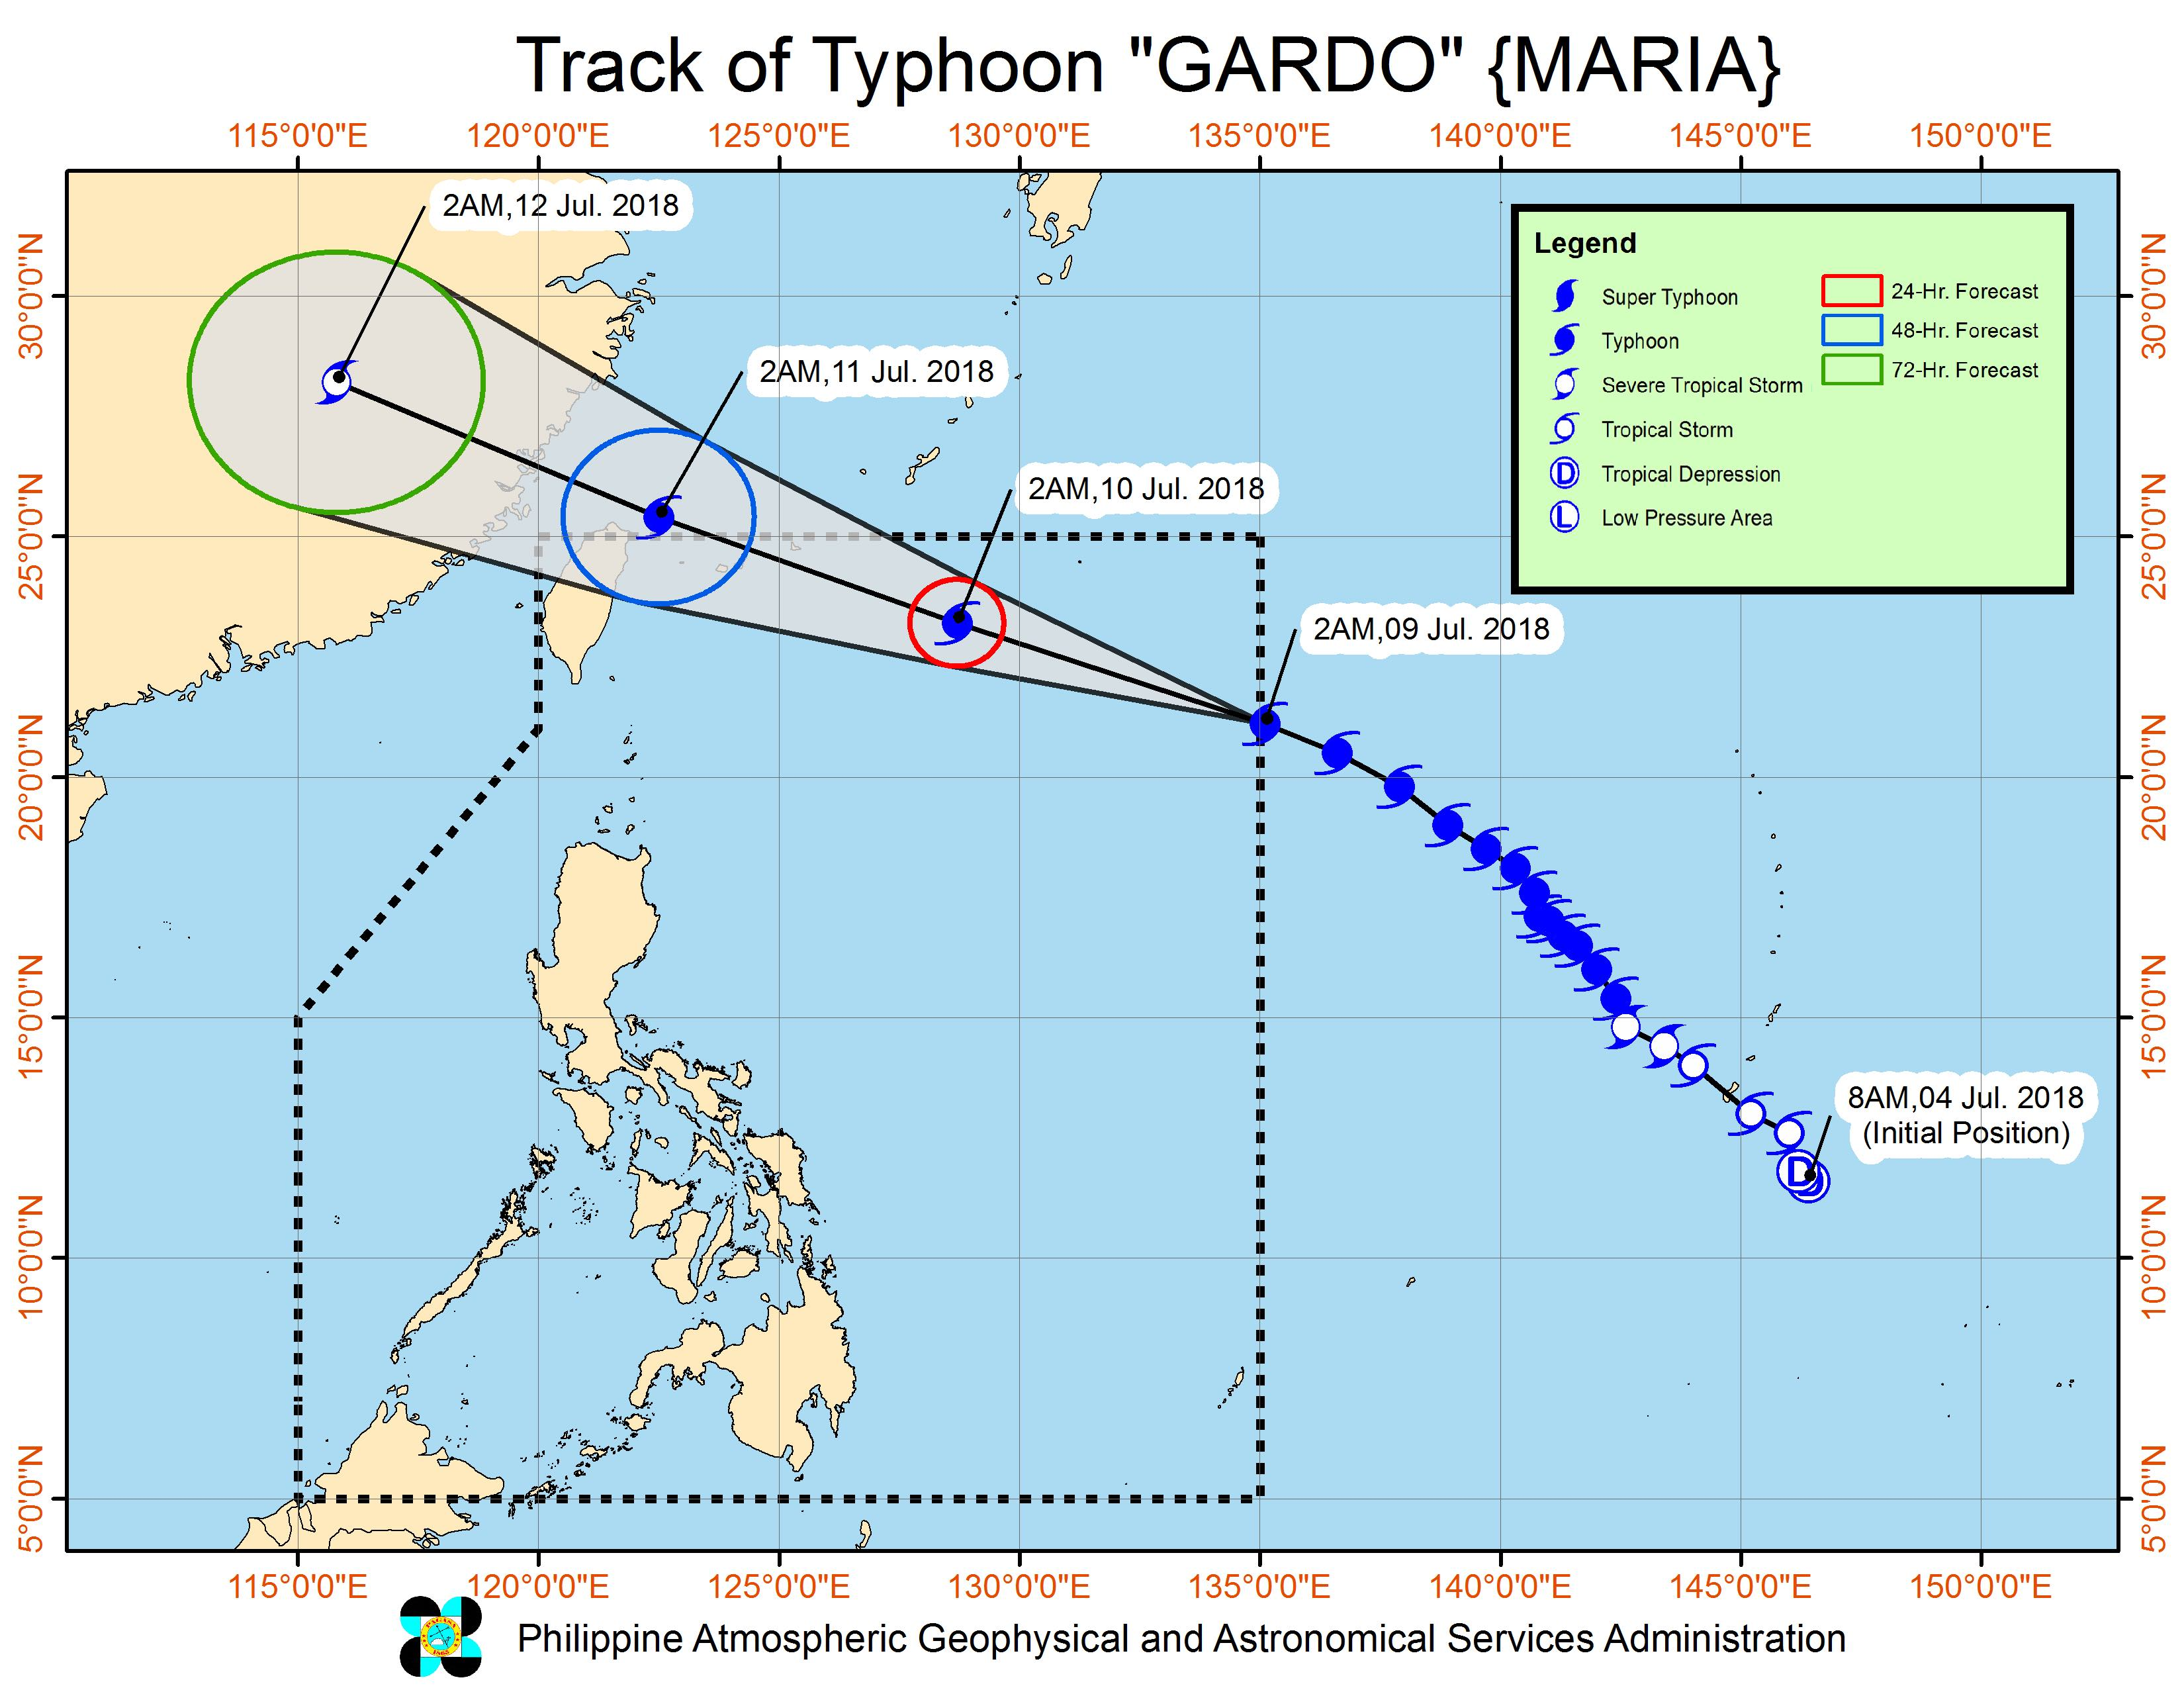 Forecast track of Typhoon Gardo (Maria) as of July 9, 2018, 5 am. Image courtesy of PAGASA